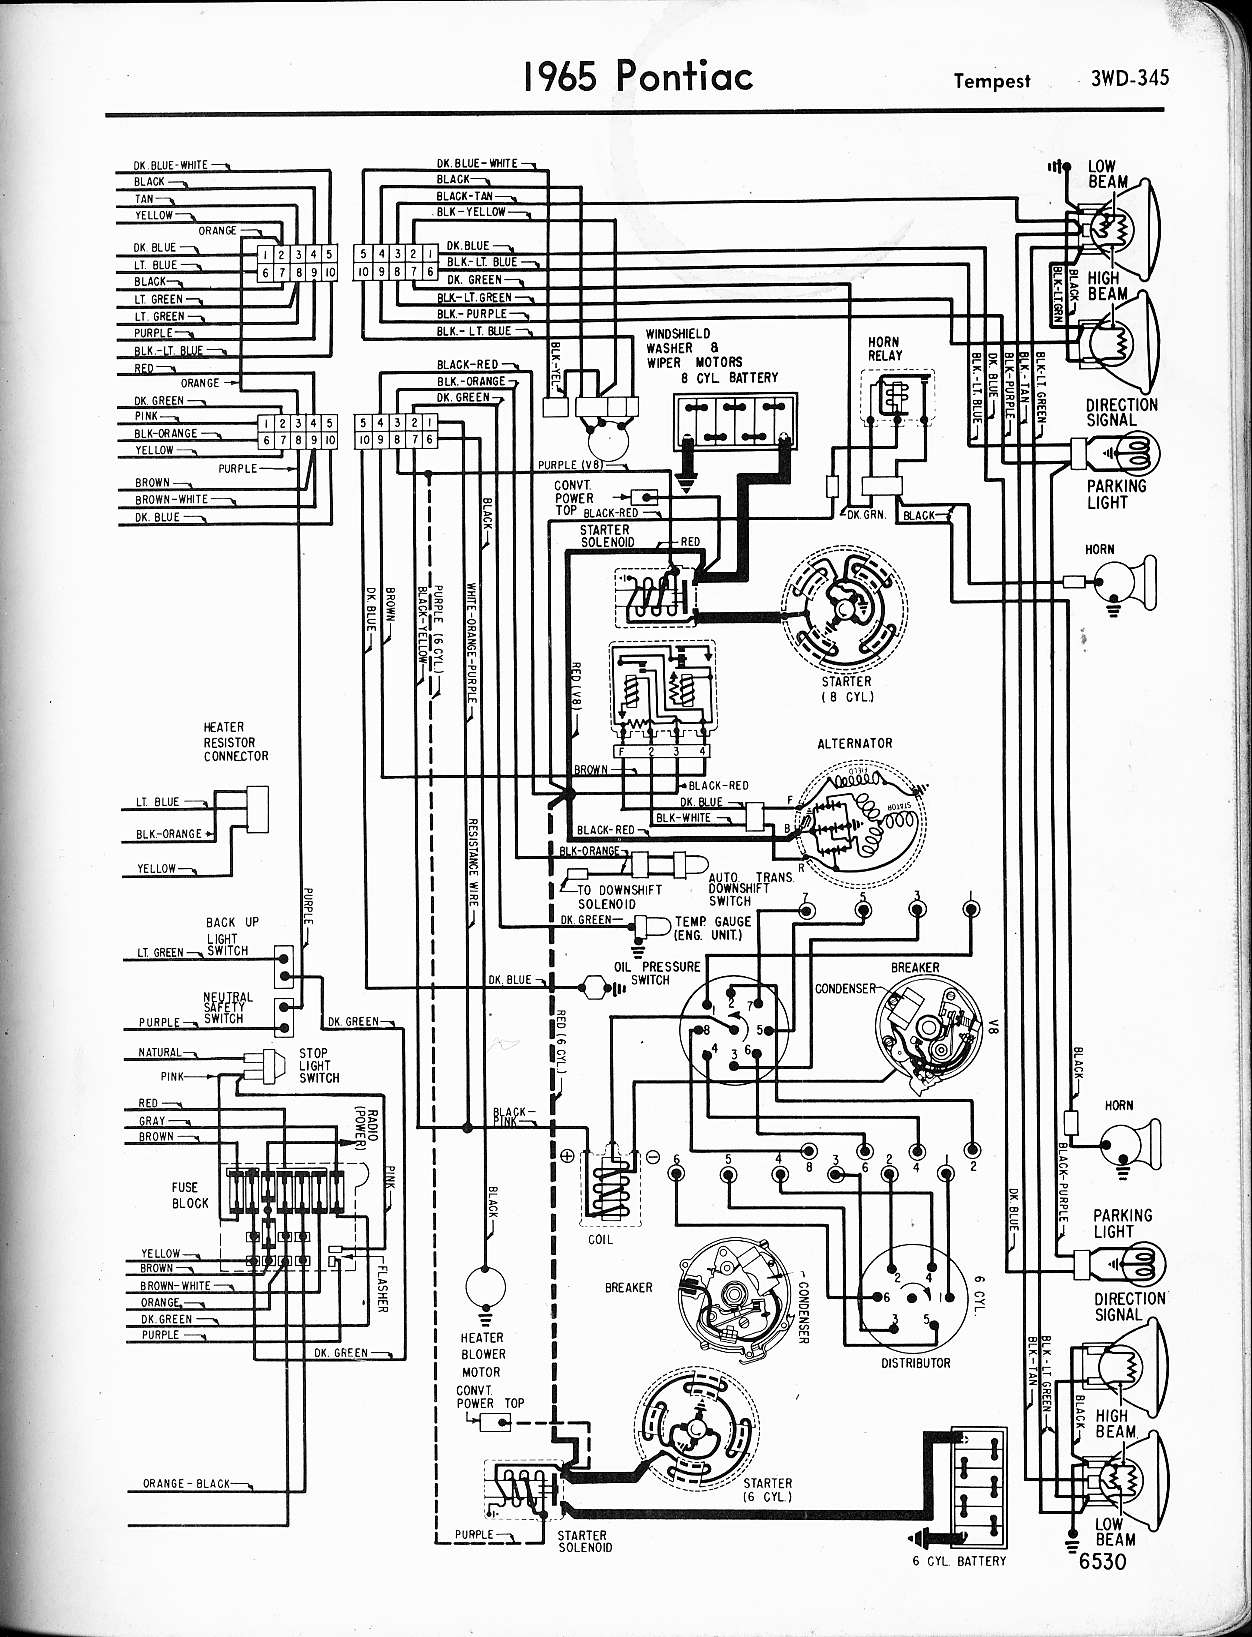 1970 Dodge Coronet Wiring Diagram Libraries 1967 Neutral Safety Switch Pontiac Lemans Simple Diagram1970 Le Mans Schematic